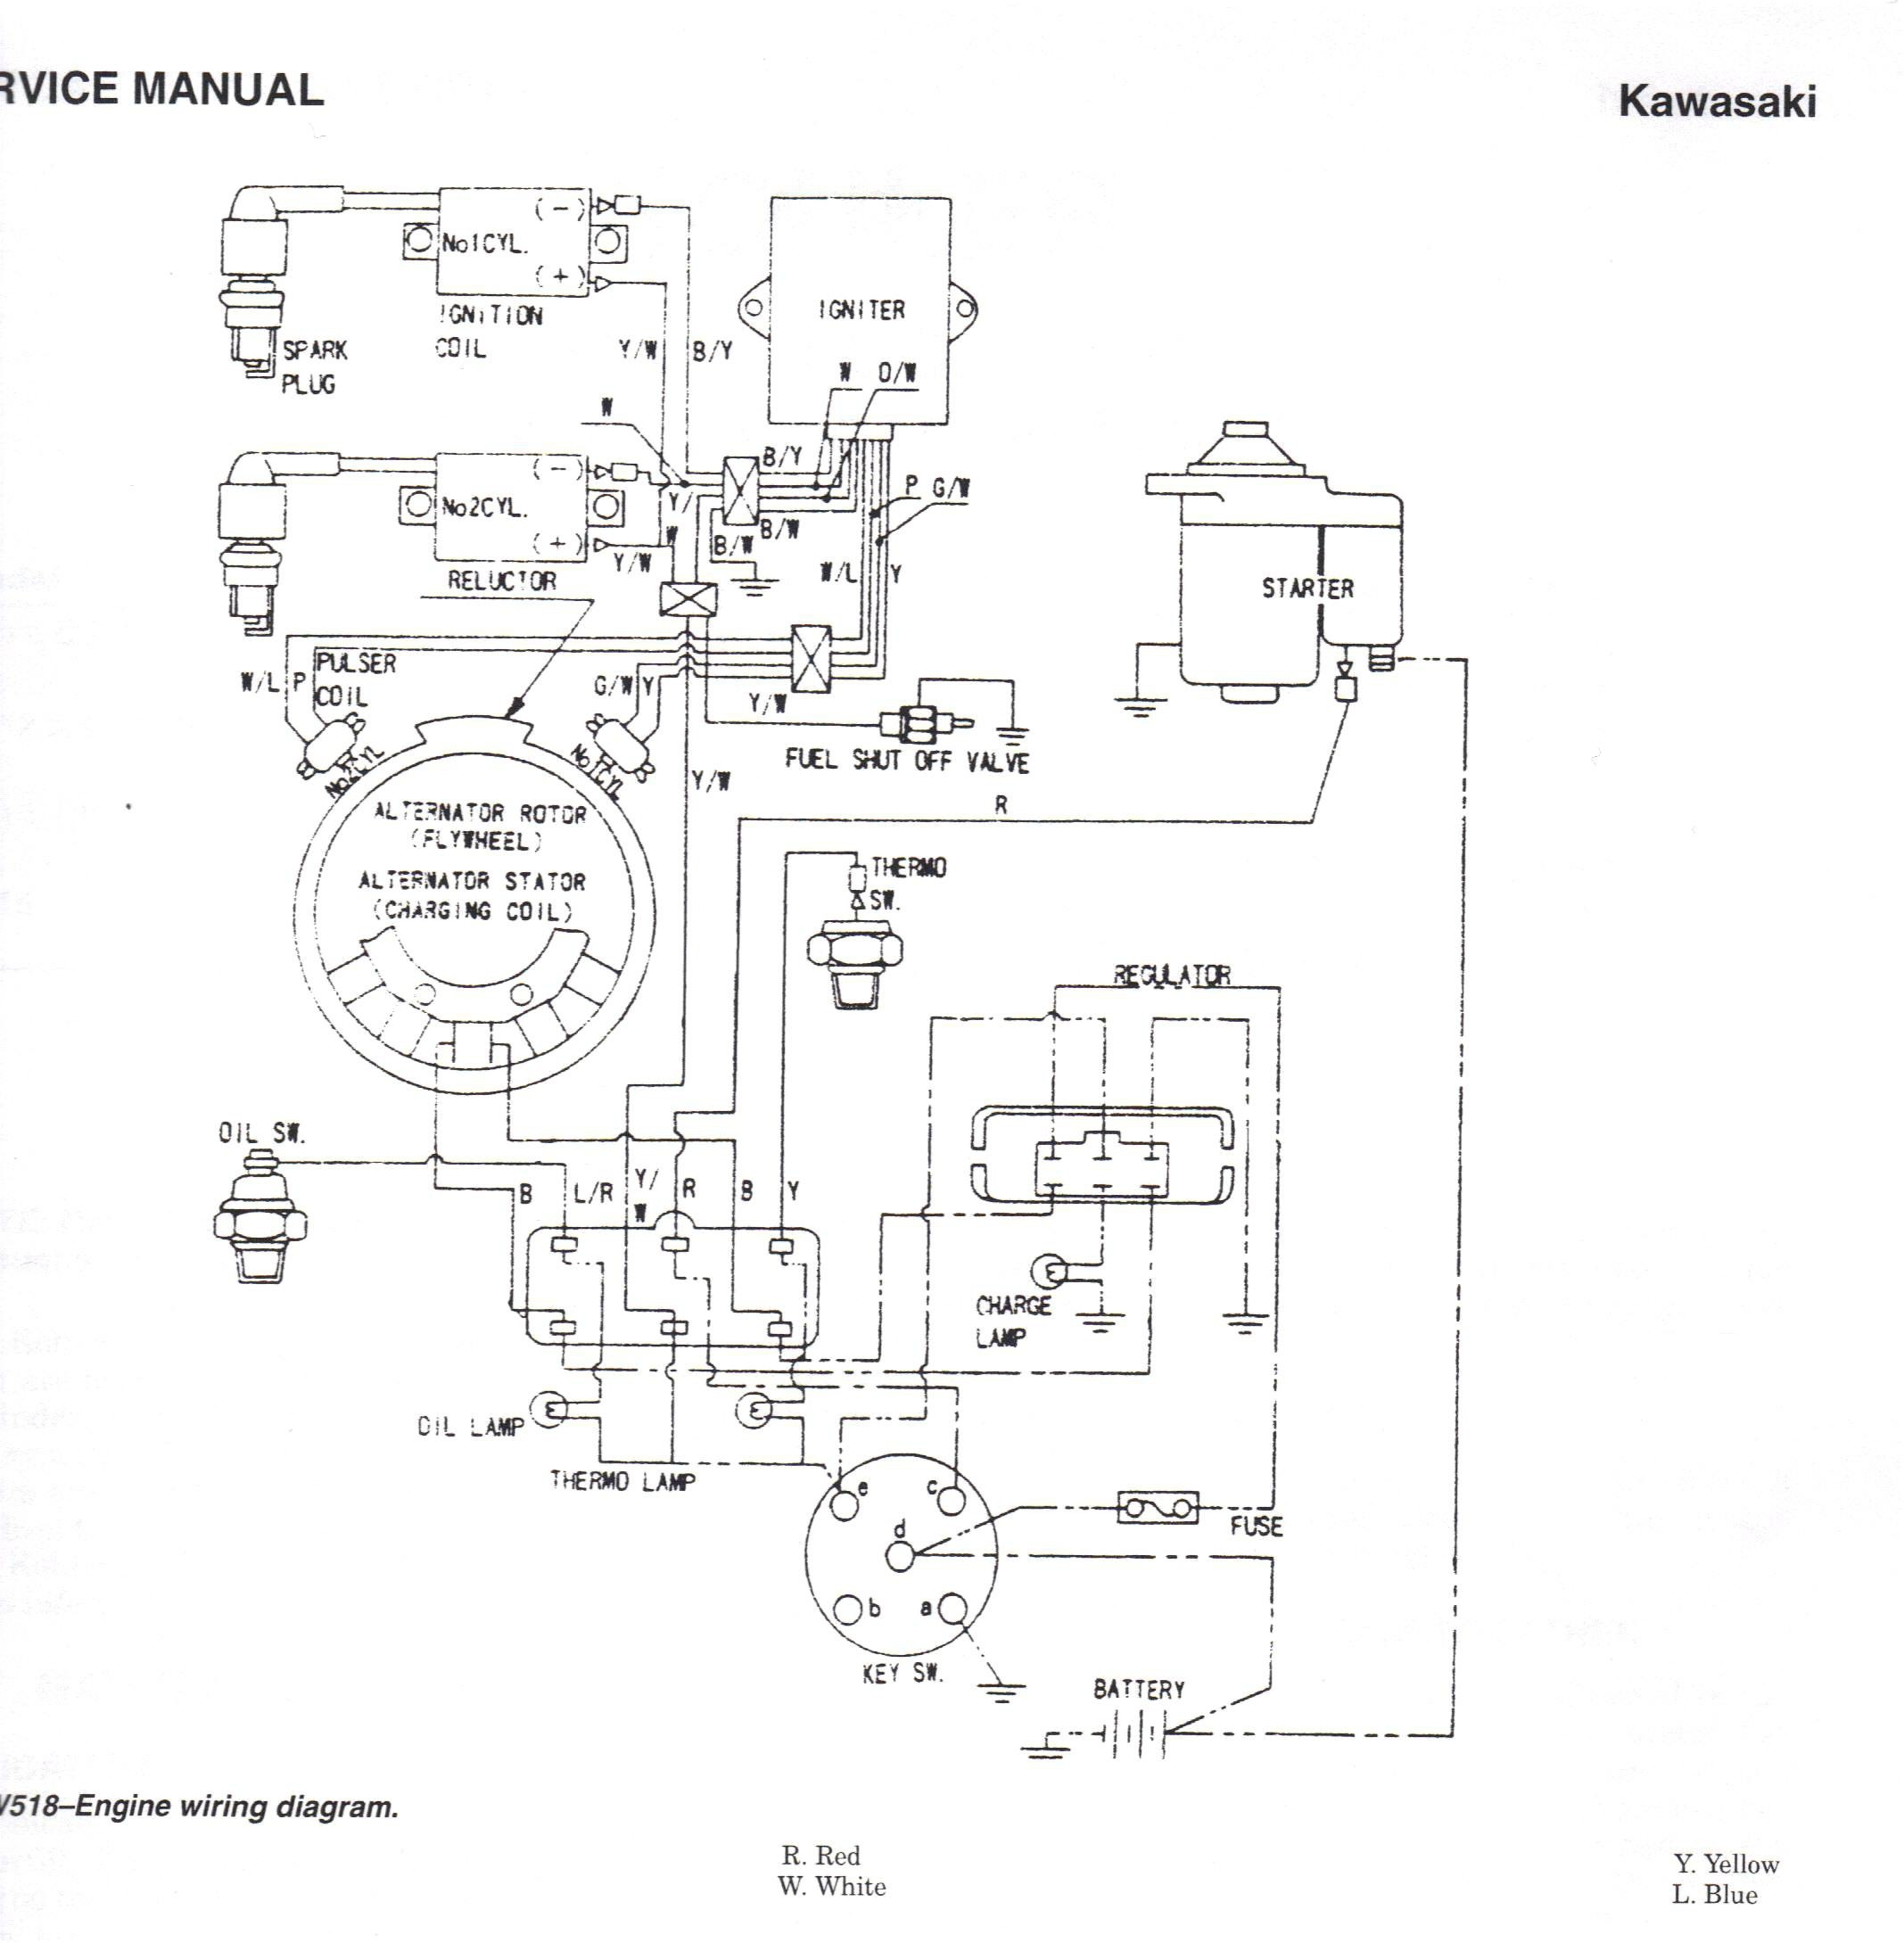 John Deere Backhoe Loader Diesel Wiring Diagram on ford alternator circuit